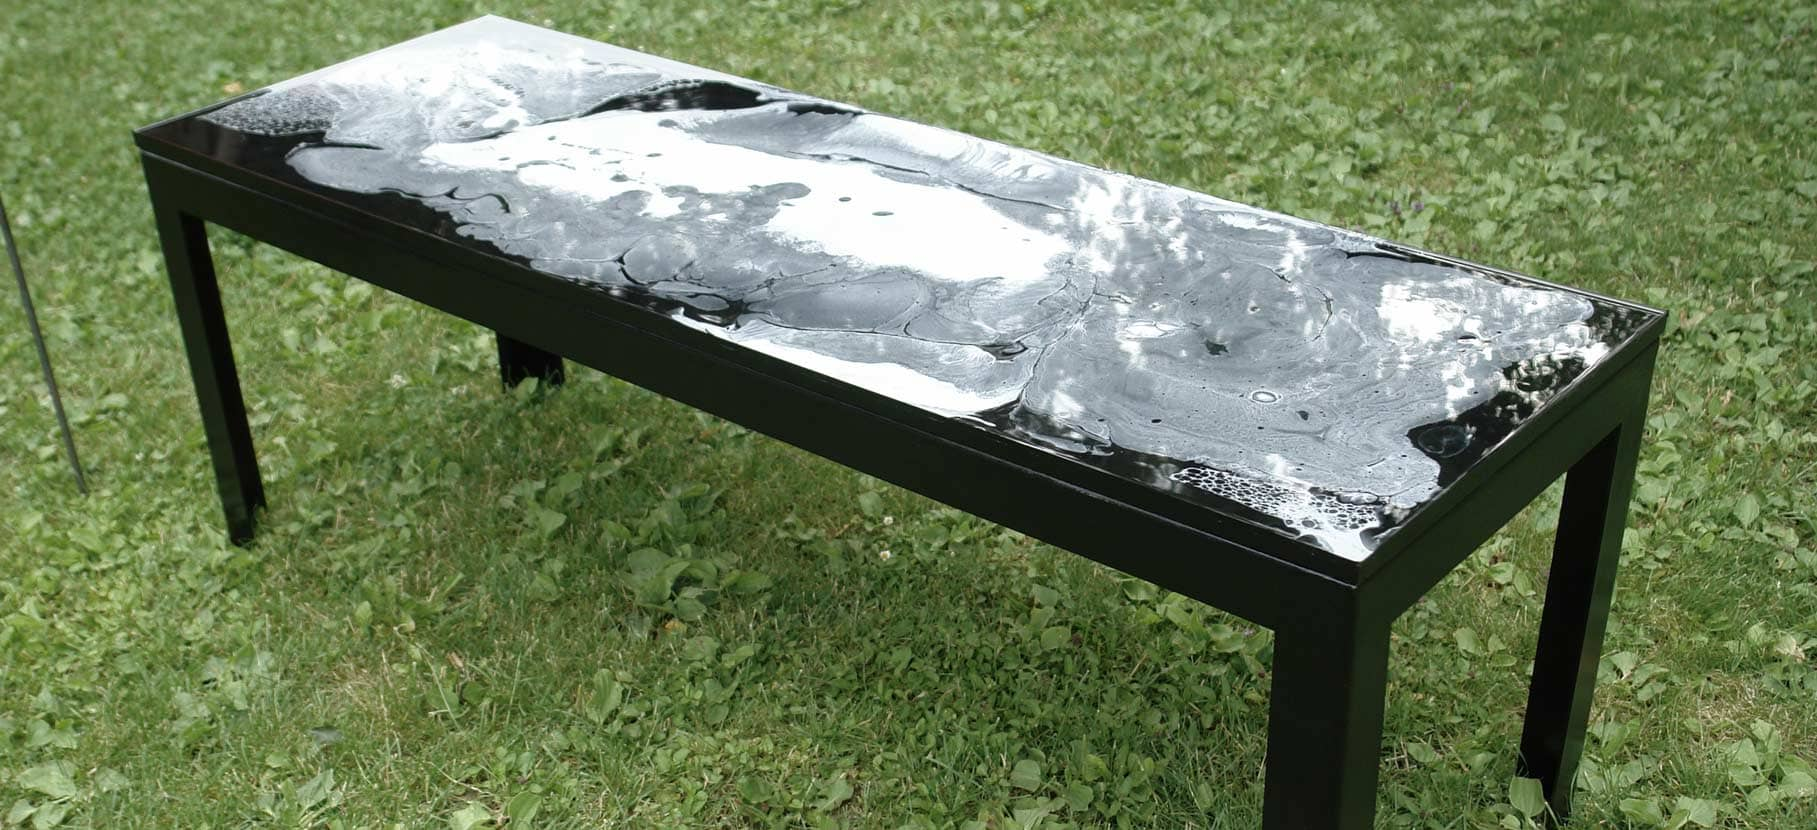 Resin bench philipp aduatz